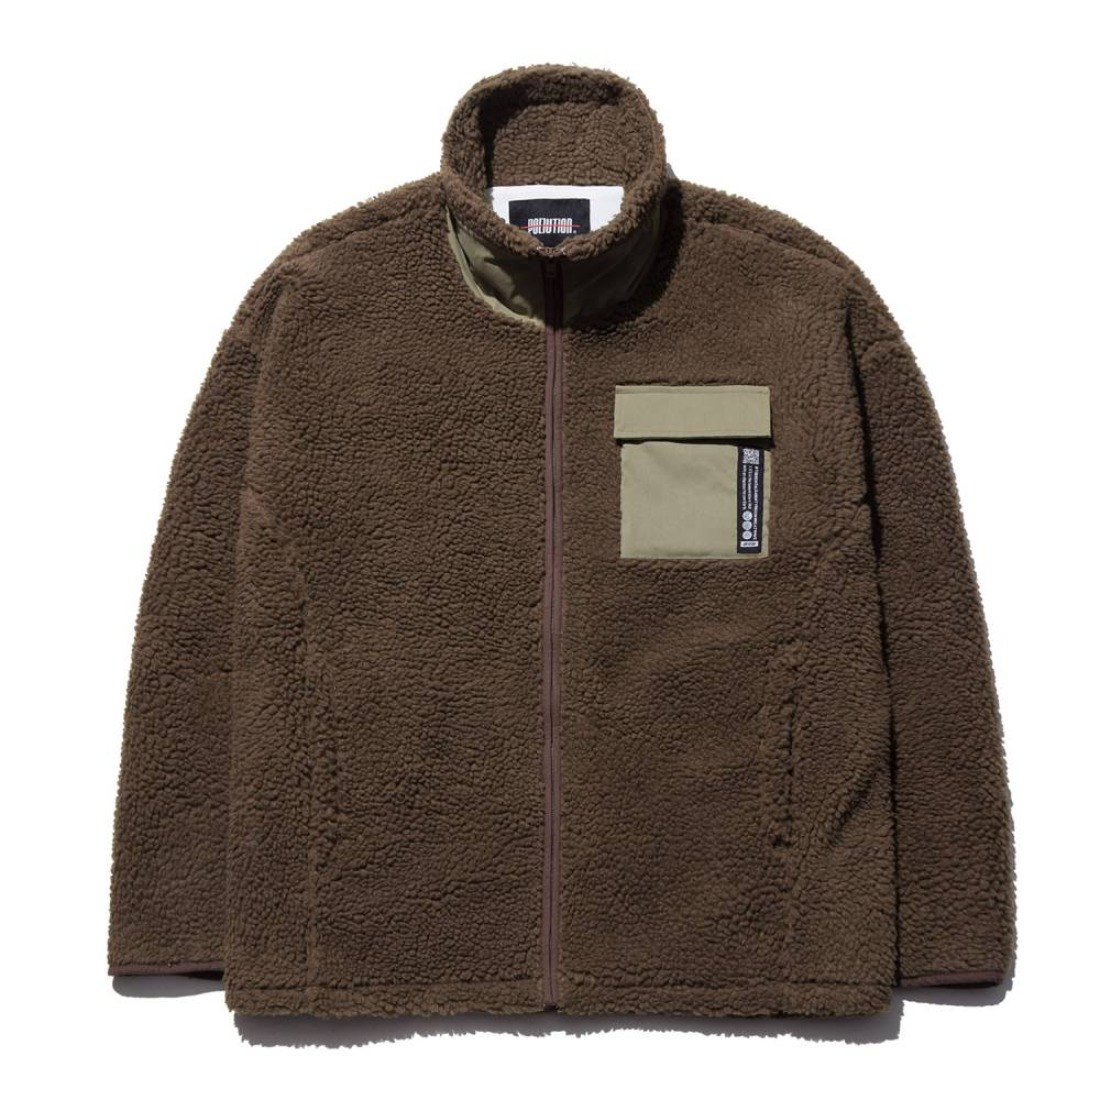 MIXED FLEECE ZIP-UP JACKET BROWN